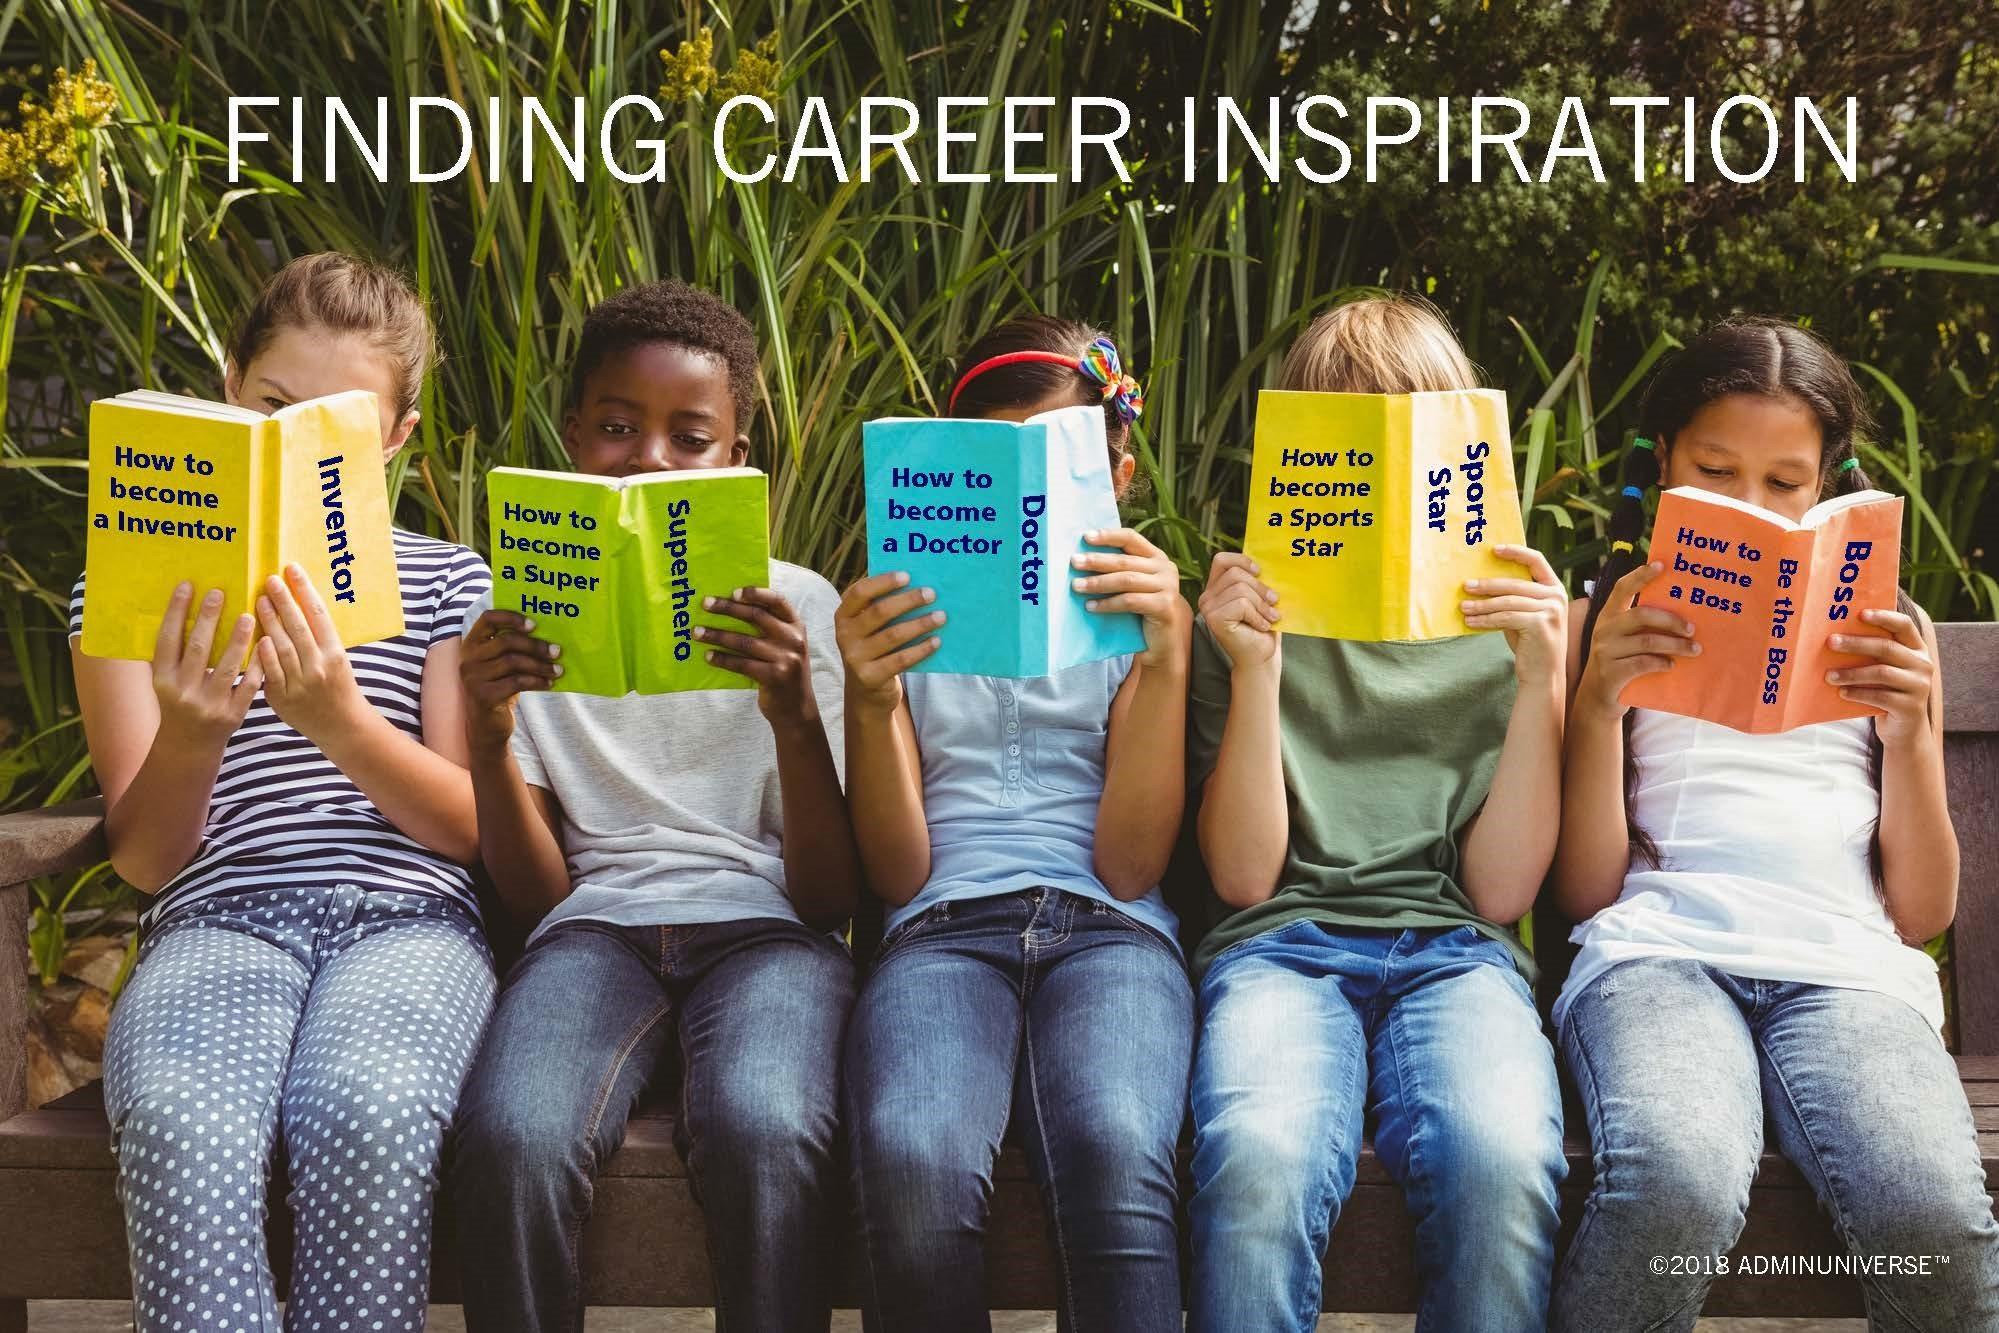 For people who know their career aspirations early on, a successful career path may not seem daunting. For others, self-doubt may crop up along the way. Whether on the first rung of your career ladder or have found yourself on the way to the top, here are a few tips to help you find inspiration for your career journey